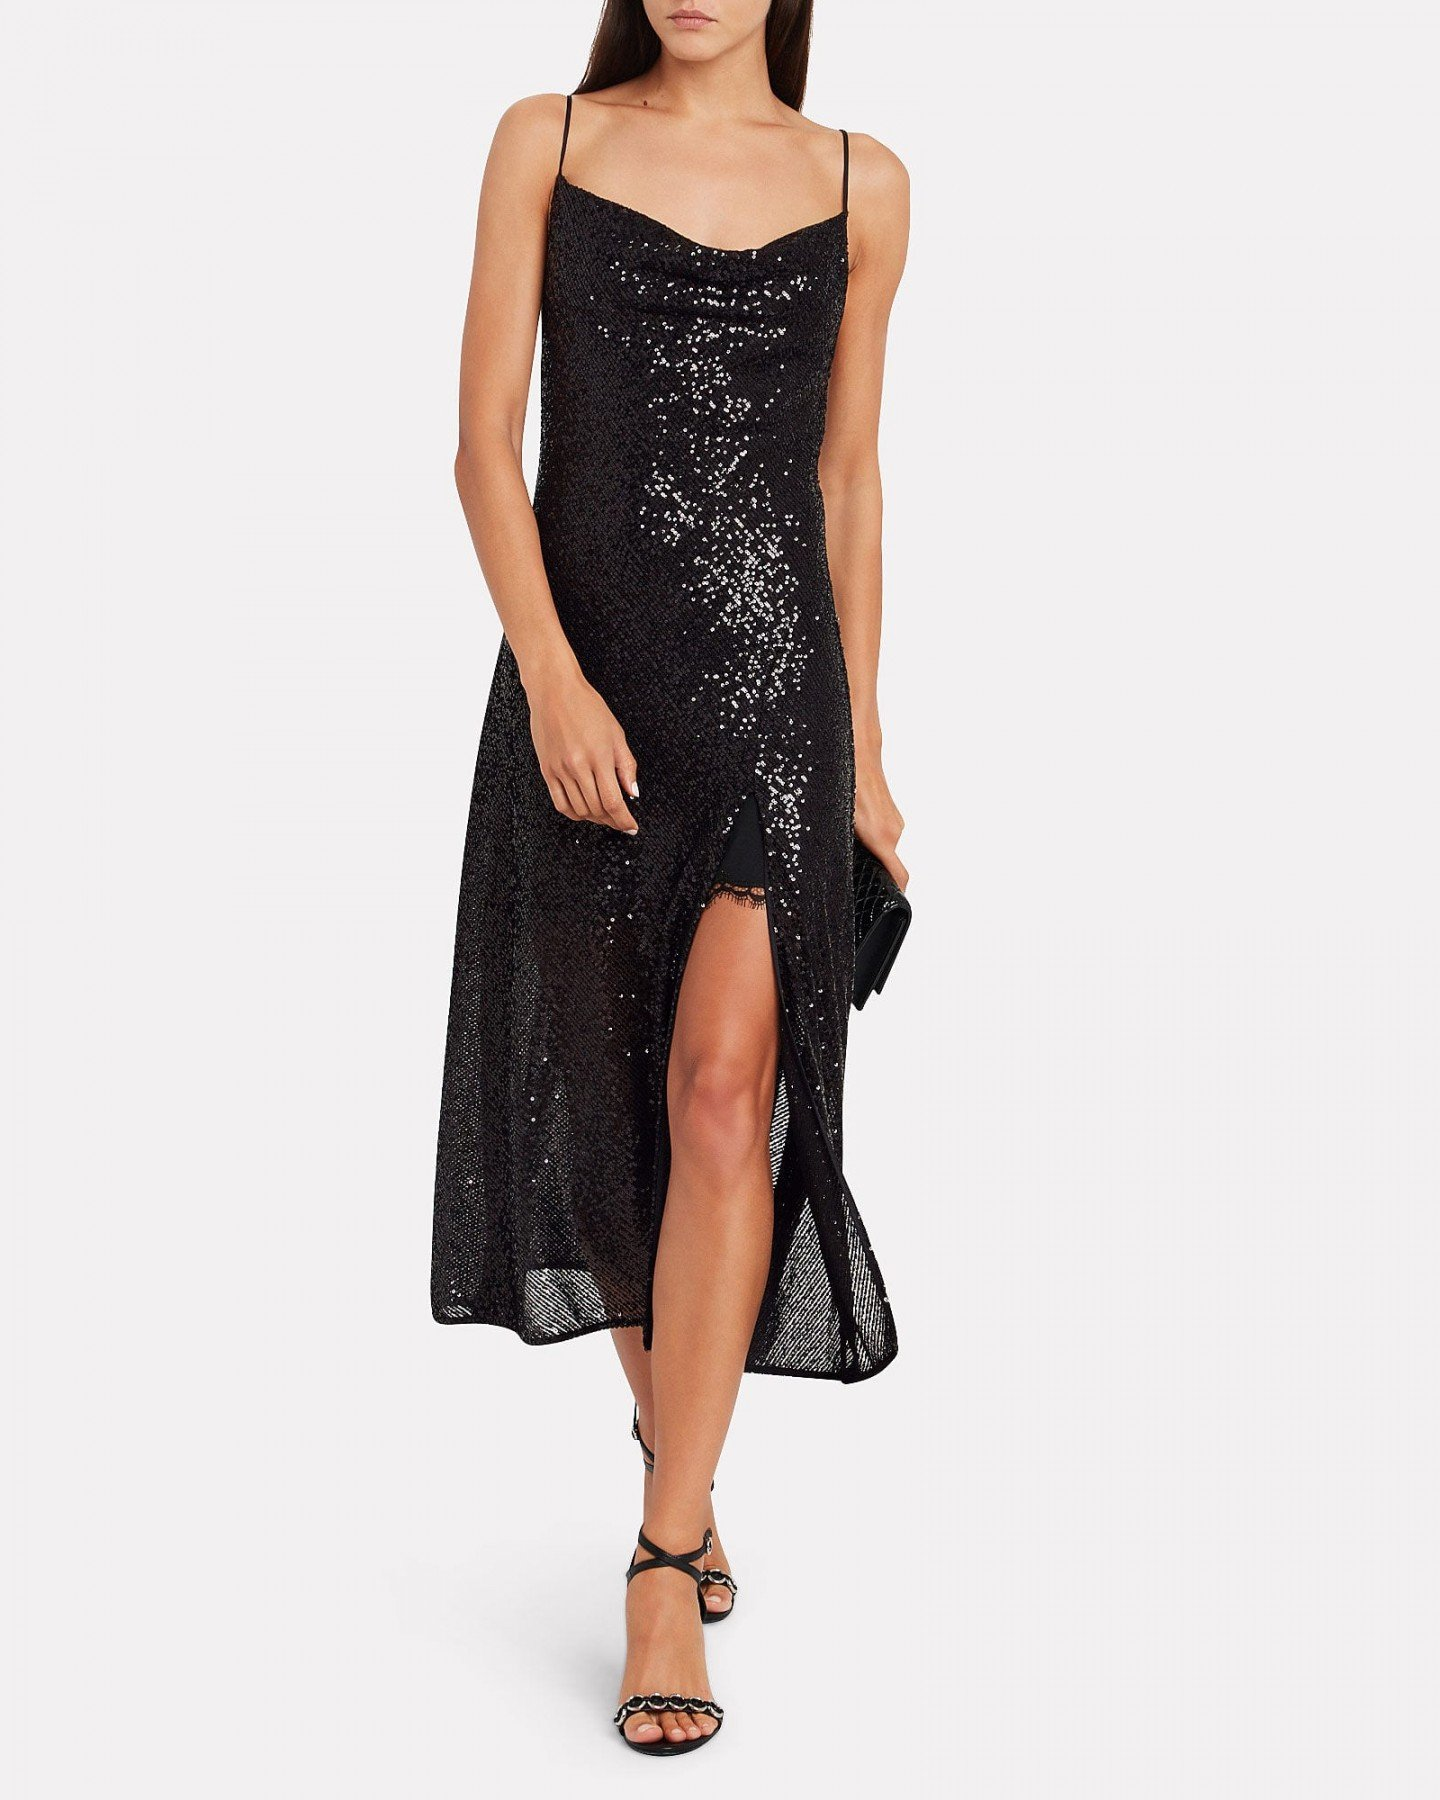 JONATHAN SIMKHAI Sequin-Embellished Slip Dress